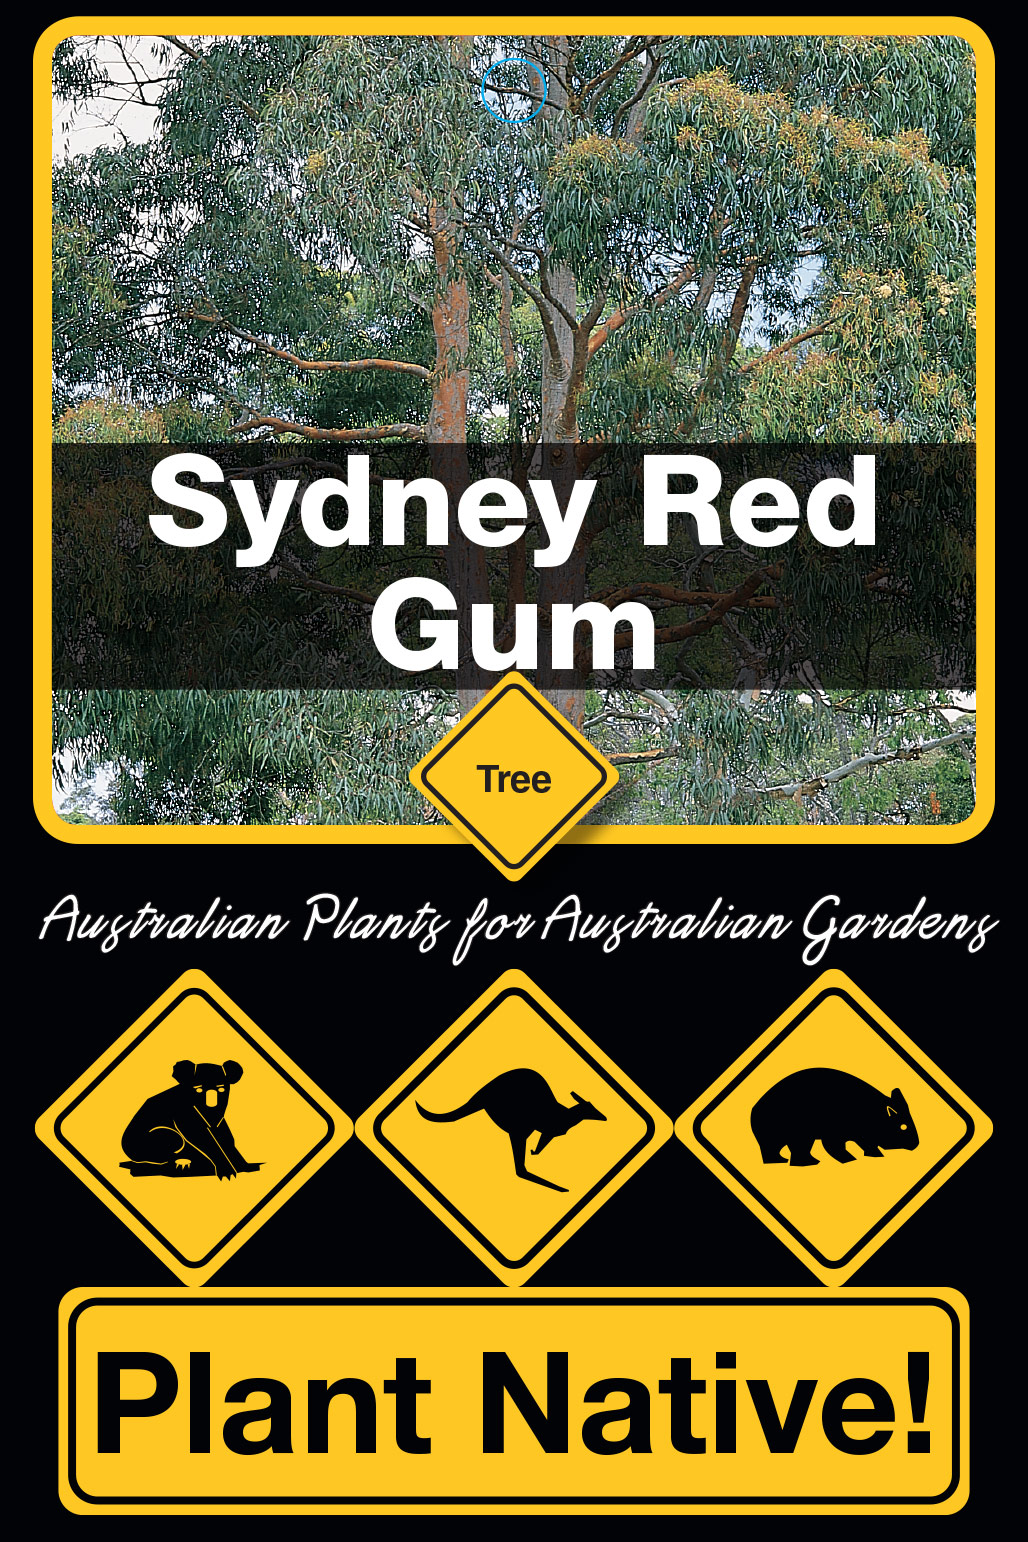 Sydney Red Gum - Plant Native!